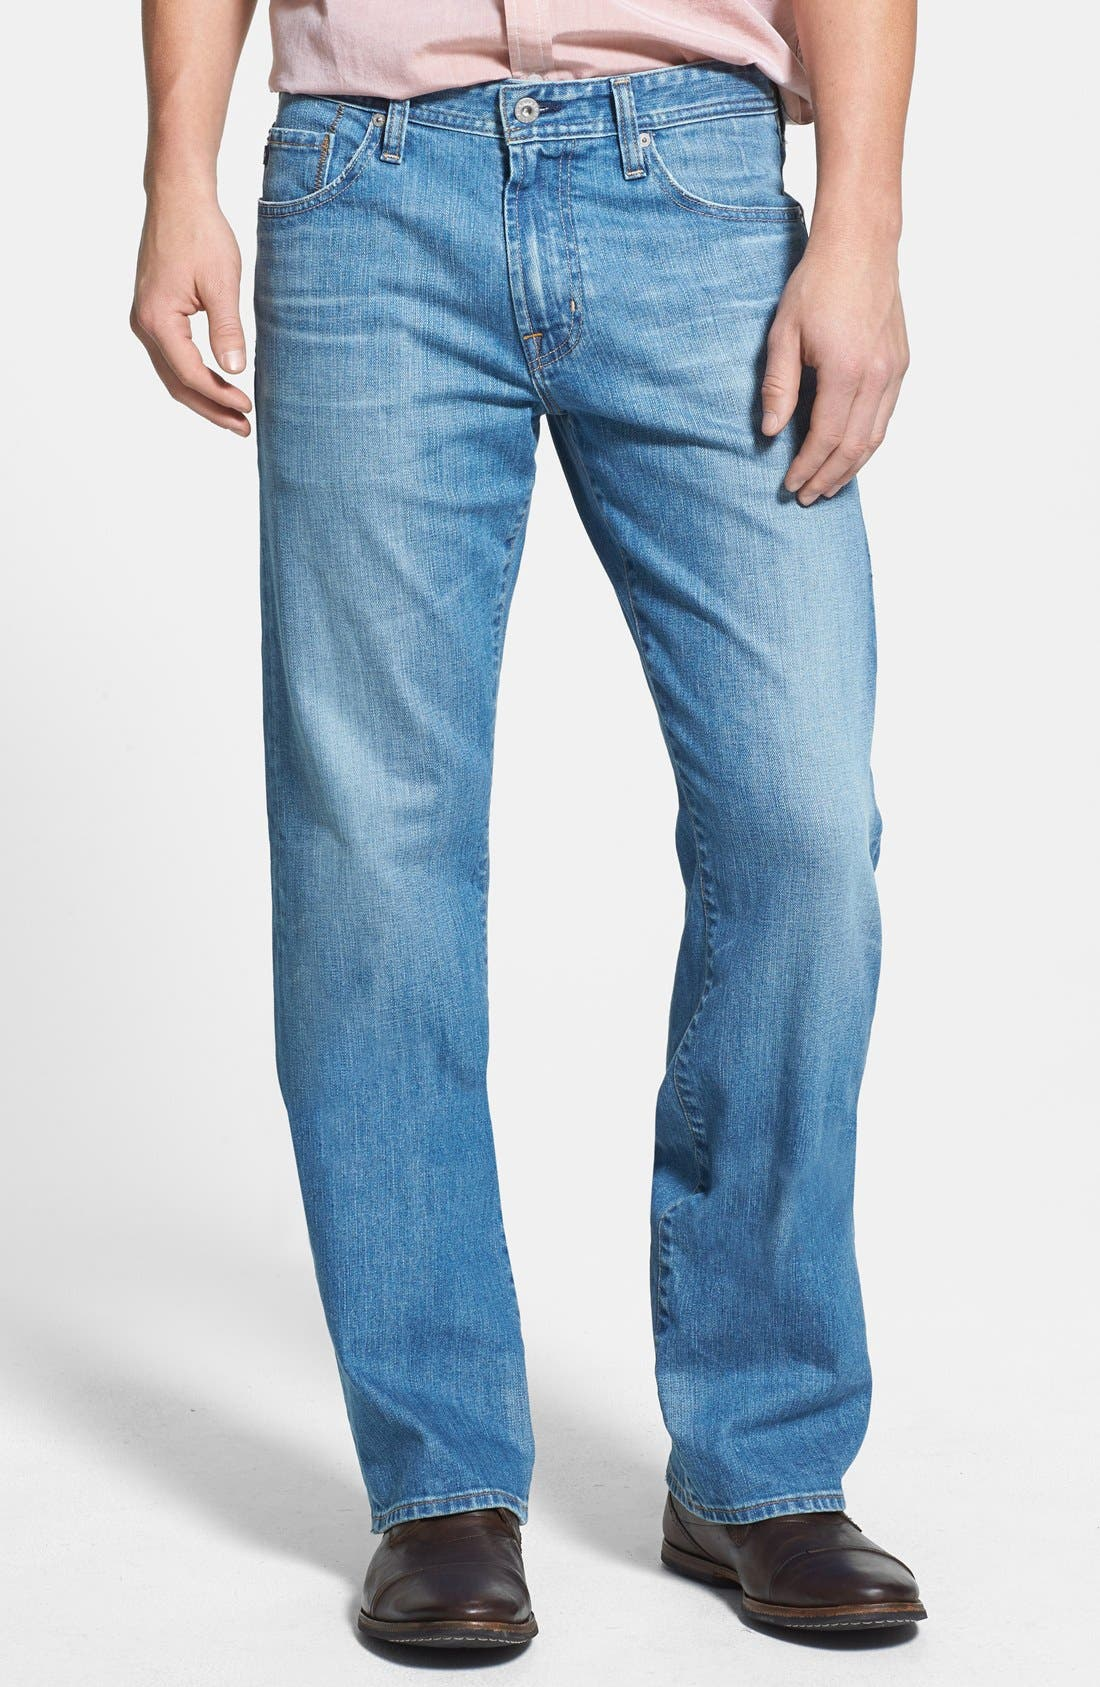 Alternate Image 1 Selected - AG 'Hero' Relaxed Fit Jeans (Max) (Online Only)